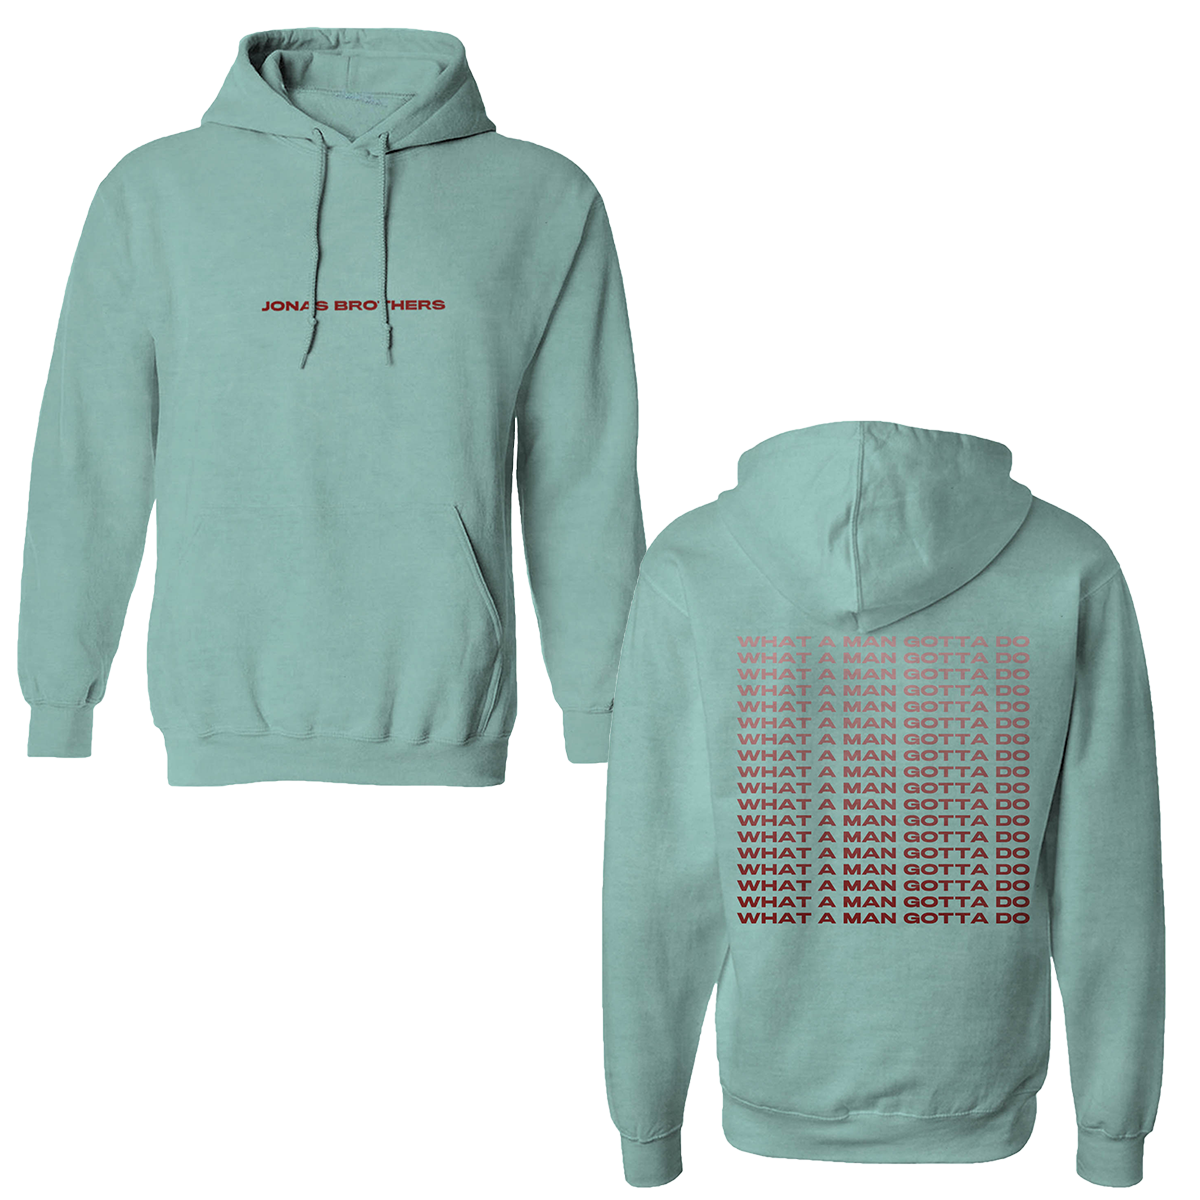 WHAT A MAN GOTTA DO SEAFOAM PULLOVER HOODIE + DIGITAL ALBUM DOWNLOAD